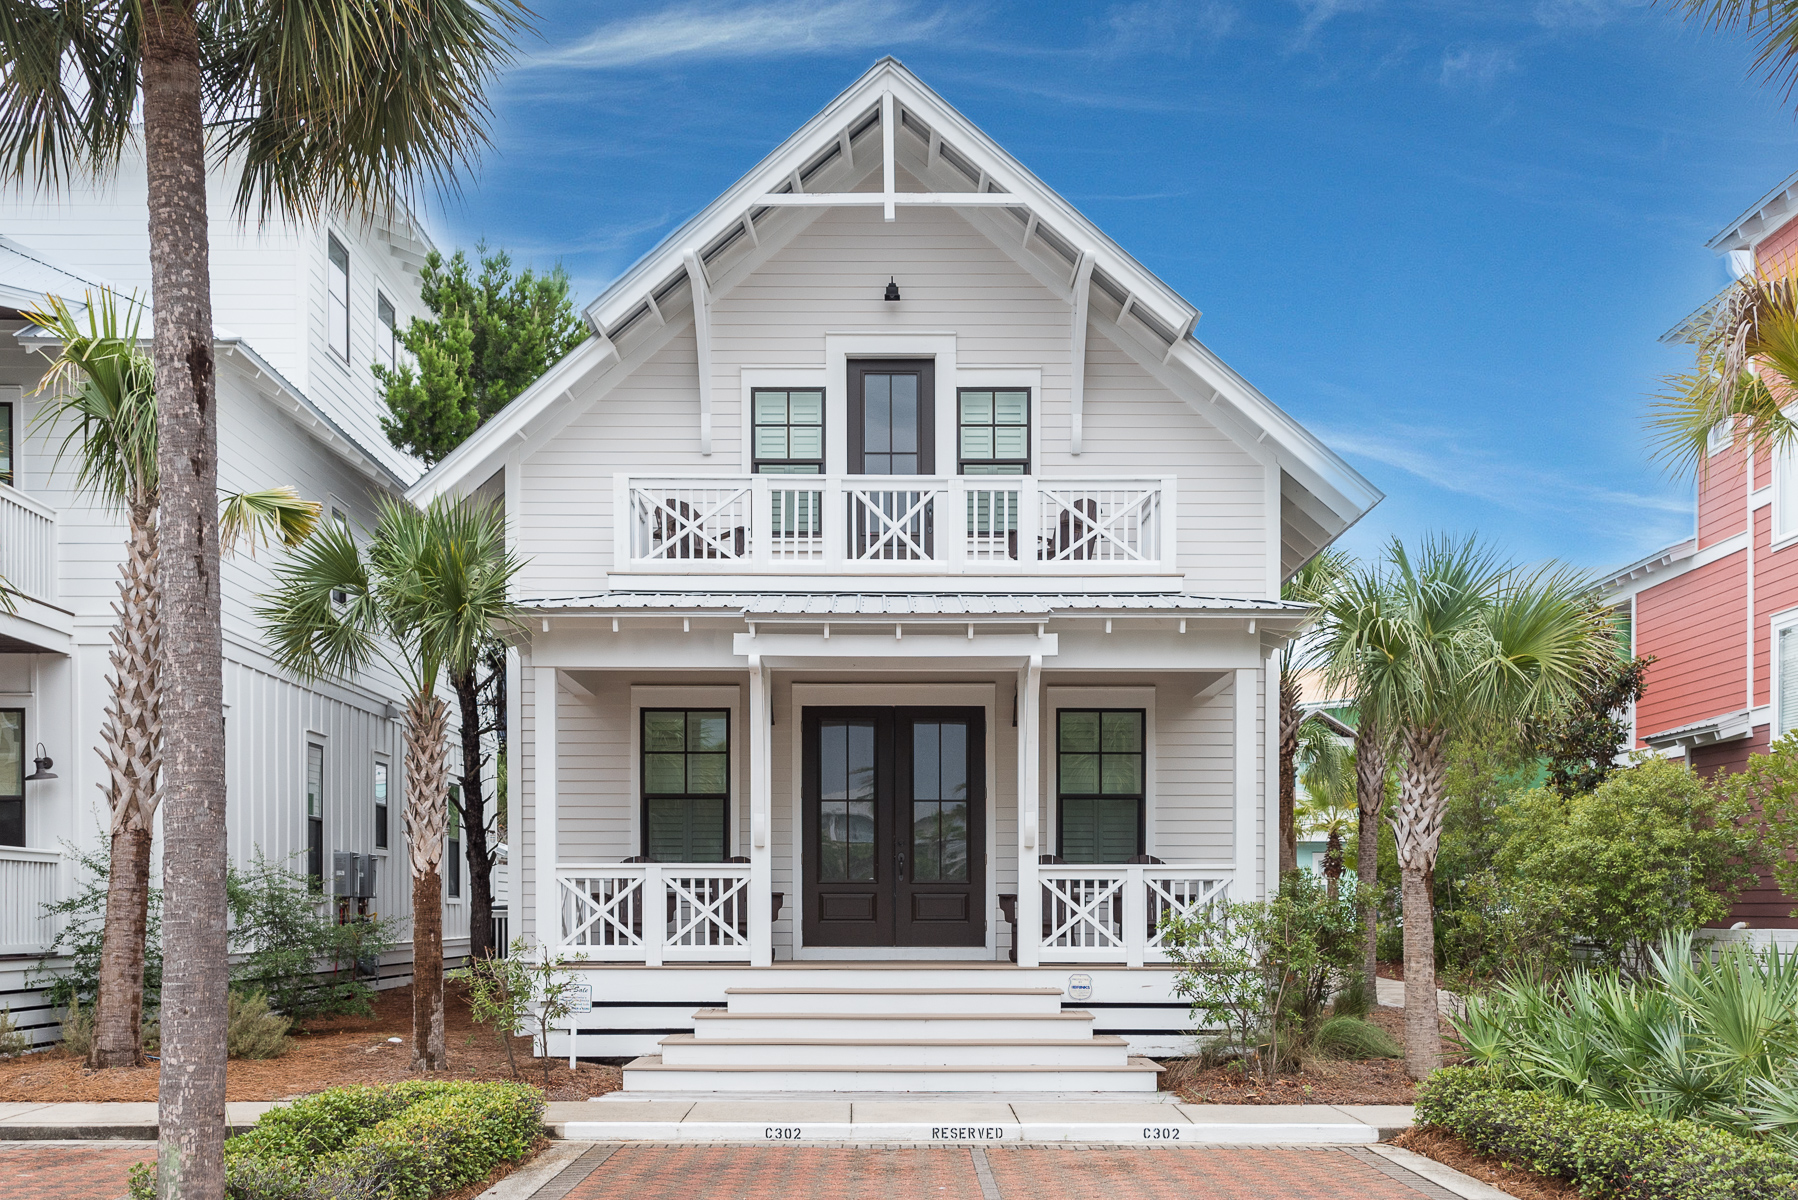 Casa para uma família para Venda às THOUGHTFULLY DESIGNED AND BEAUTIFULLY FURNISHED BEACH HOME 46 Seacrest Beach Boulevard E Inlet Beach, Florida, 32461 Estados Unidos